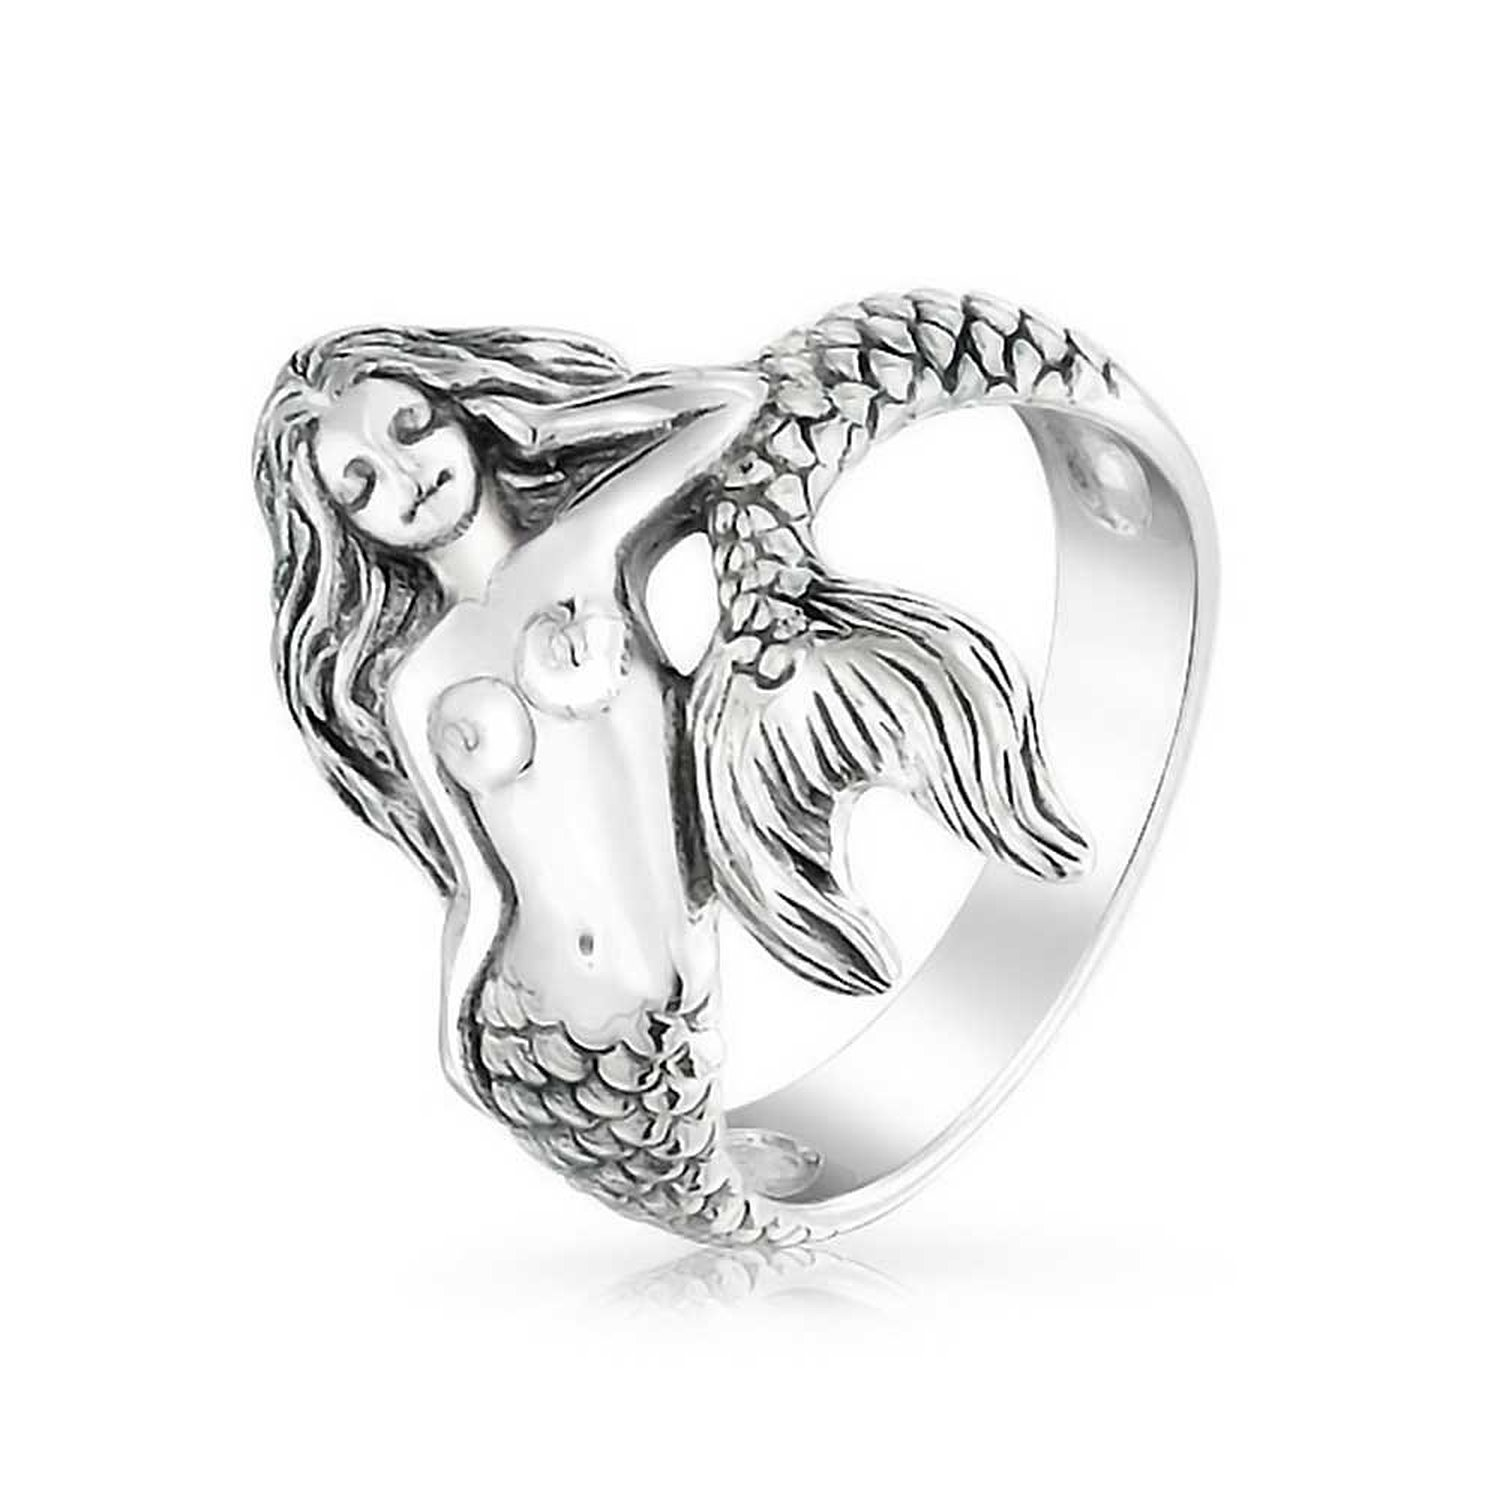 Amazon.com: bling jewelry 925 sterling silver antique nautical sea nymph mermaid ring: right hand rings: jewelry